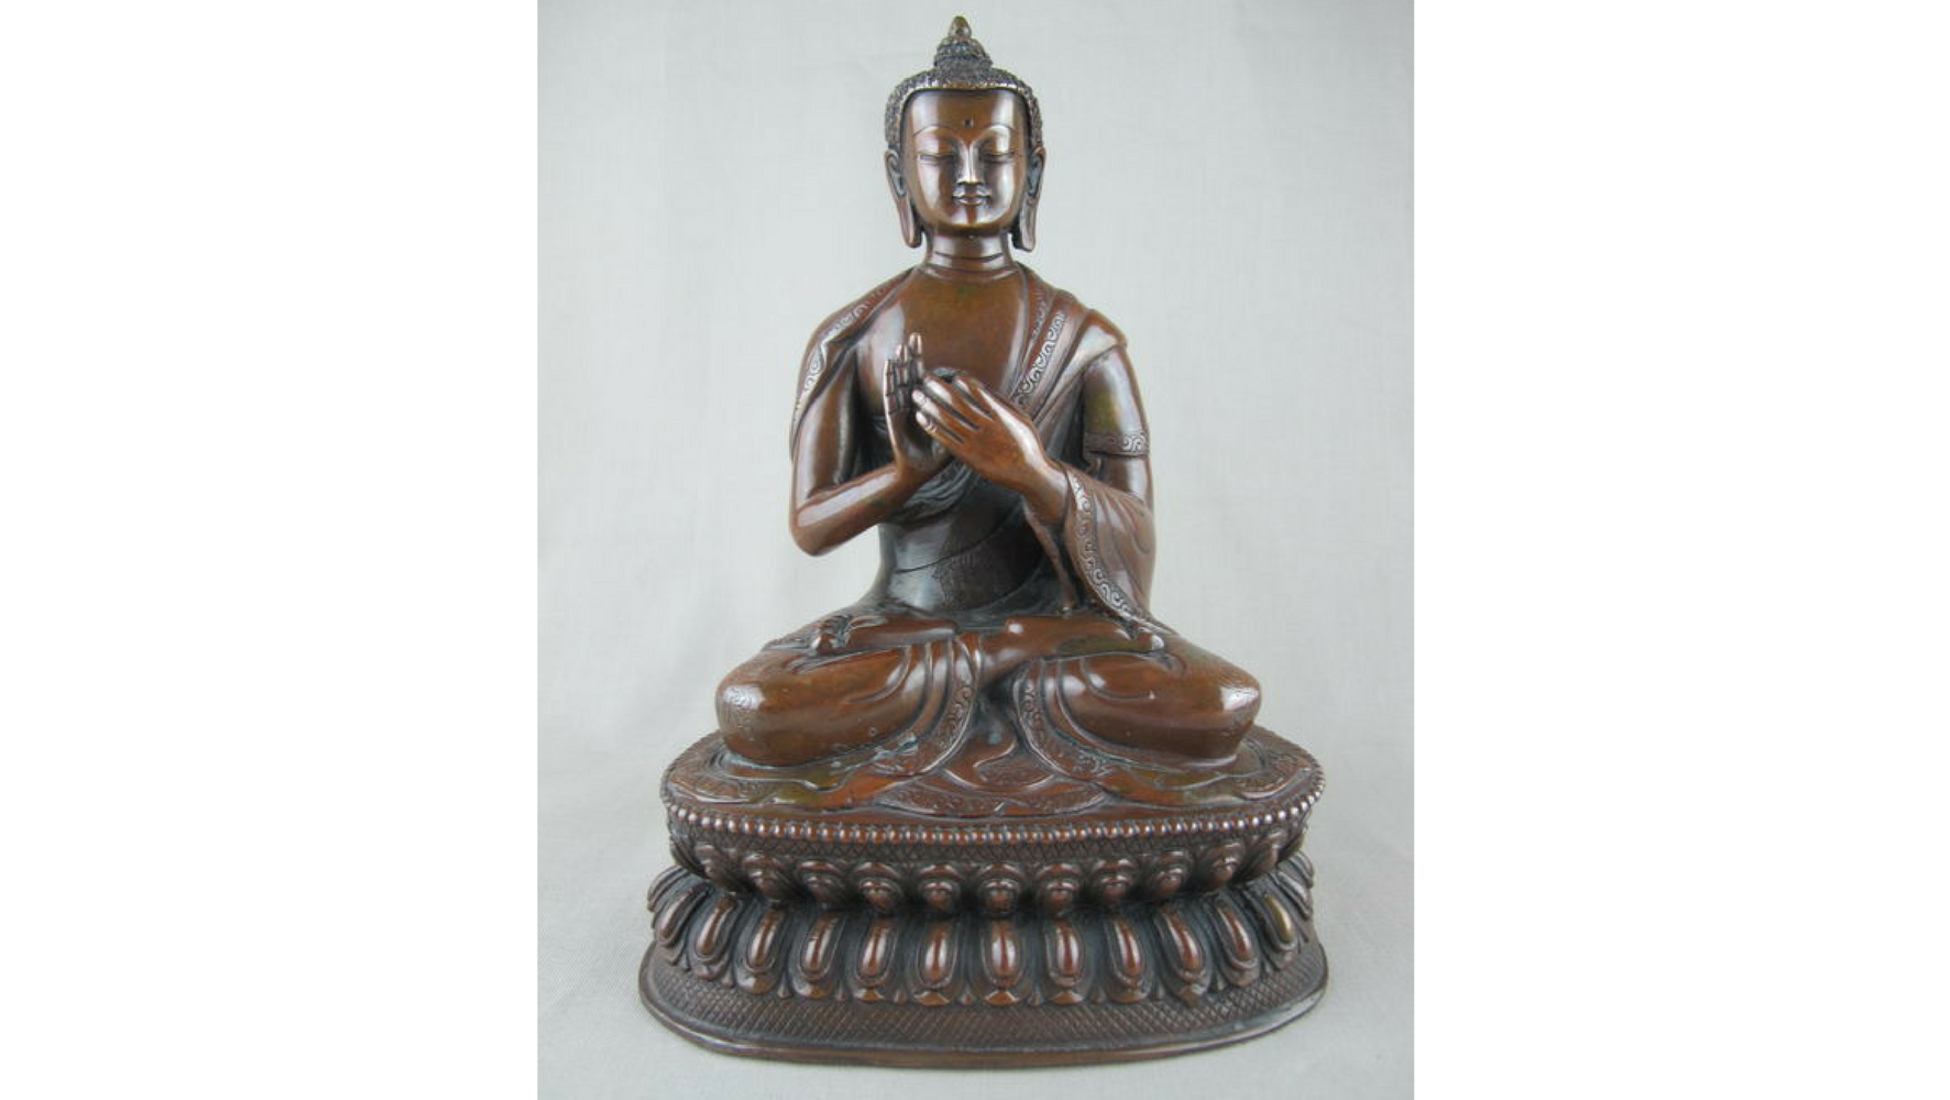 posen und haltungen von buddha die bedeutung der h nde bei buddhastatuen catawiki. Black Bedroom Furniture Sets. Home Design Ideas